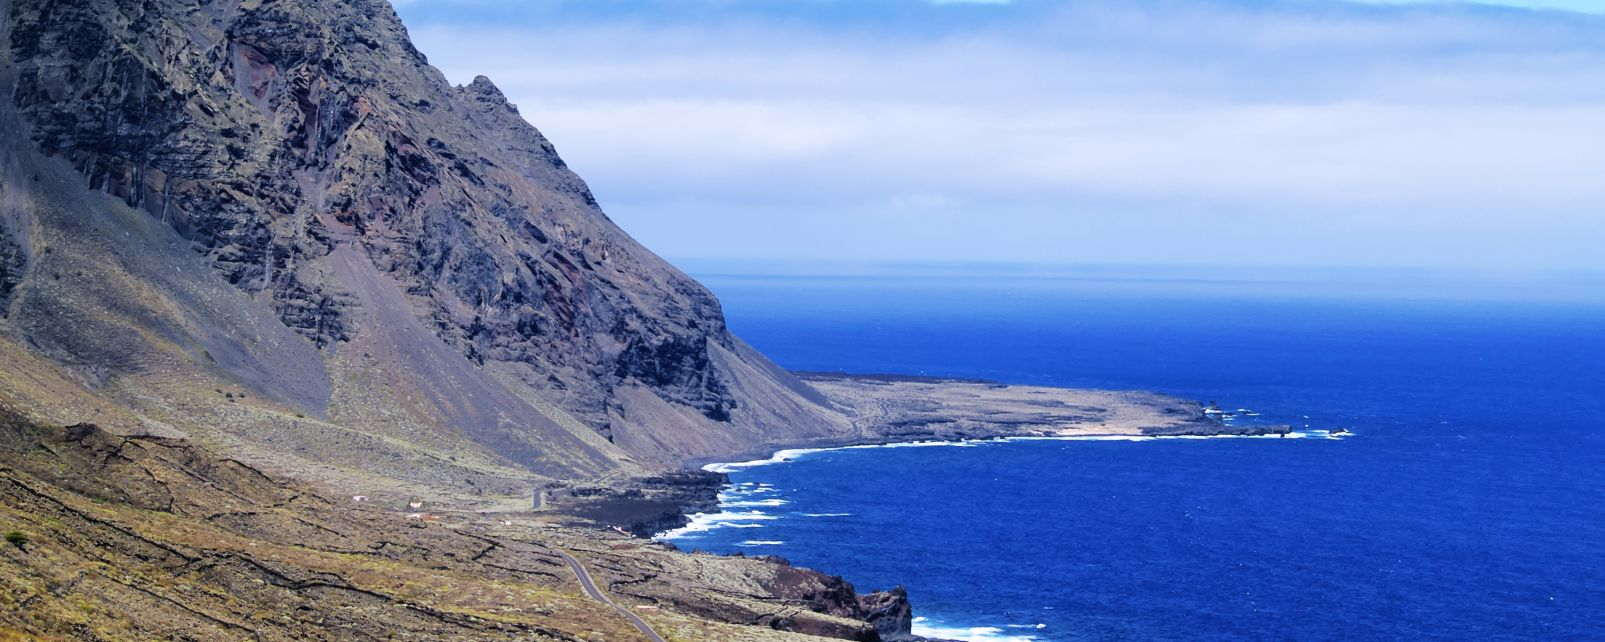 El Hierro, the end of the earth, Gran Canaria, Landscapes, The Canary Islands